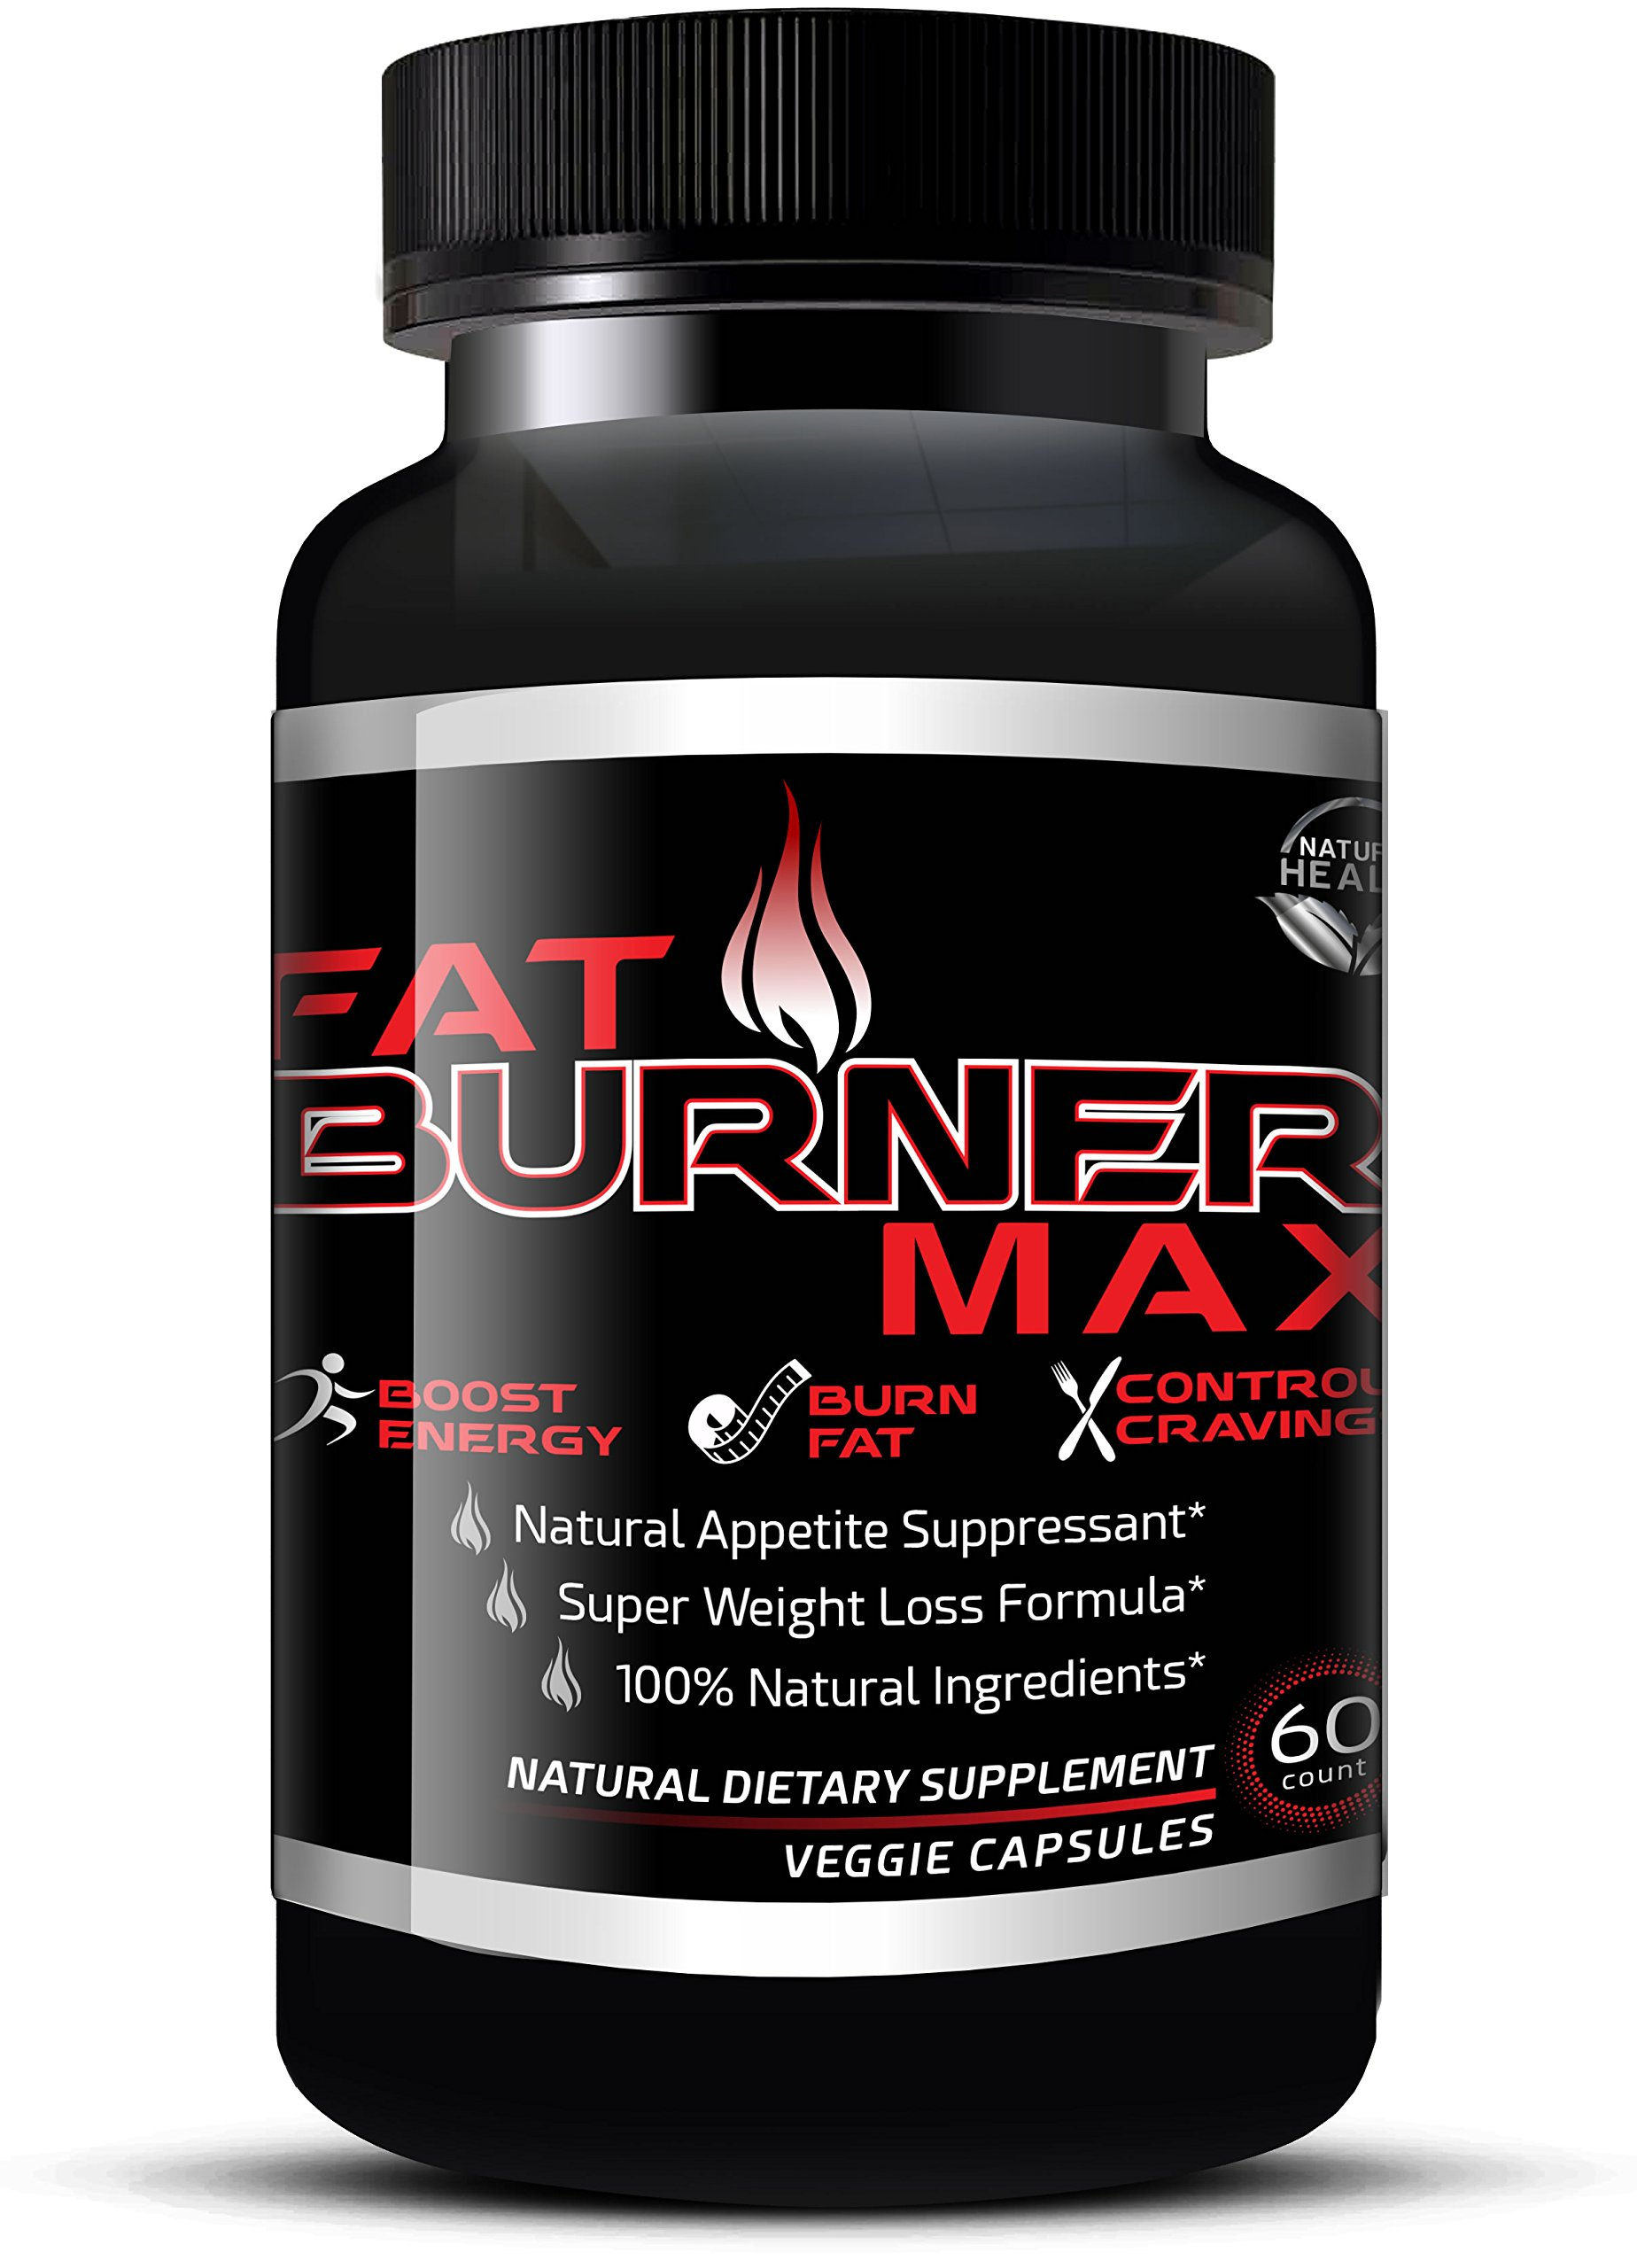 Fat Burner Max - Natural Appetite Suppressant & Muscle Preserving Diet Pills For Men & Women - Weight Loss Supplements That Work With Garcinia Cambogia, Glucomannan & Caralluma (60 Veggie Capsules)